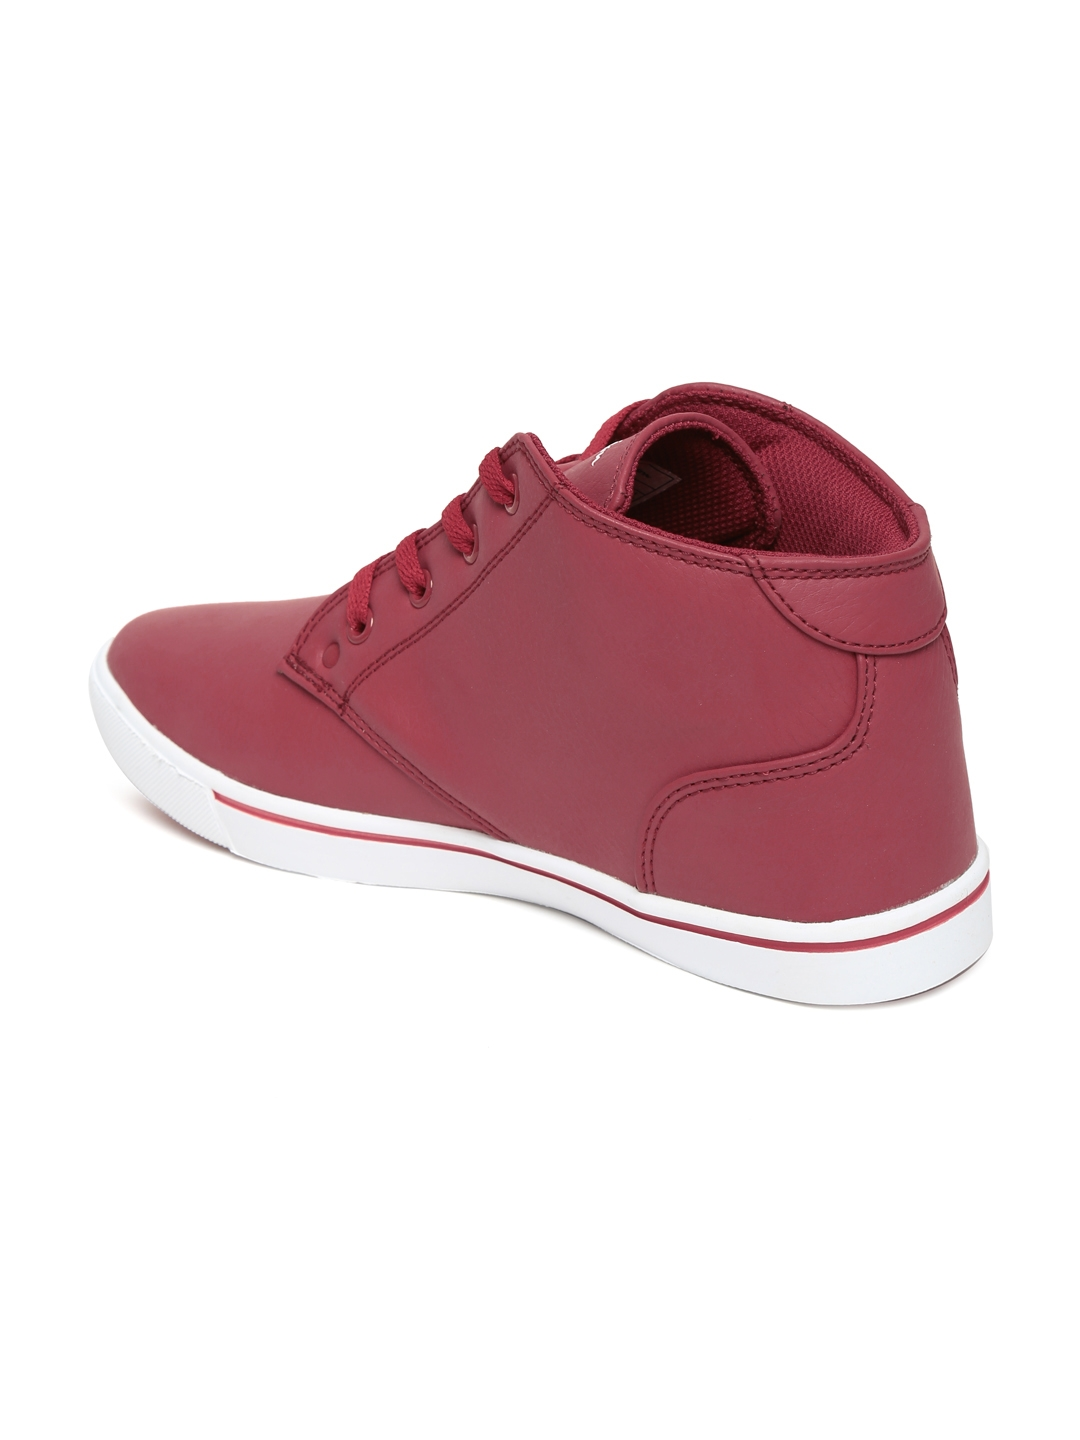 ec7166fec68361 Buy Champion Men Red Casual Shoes - Casual Shoes for Men 531434